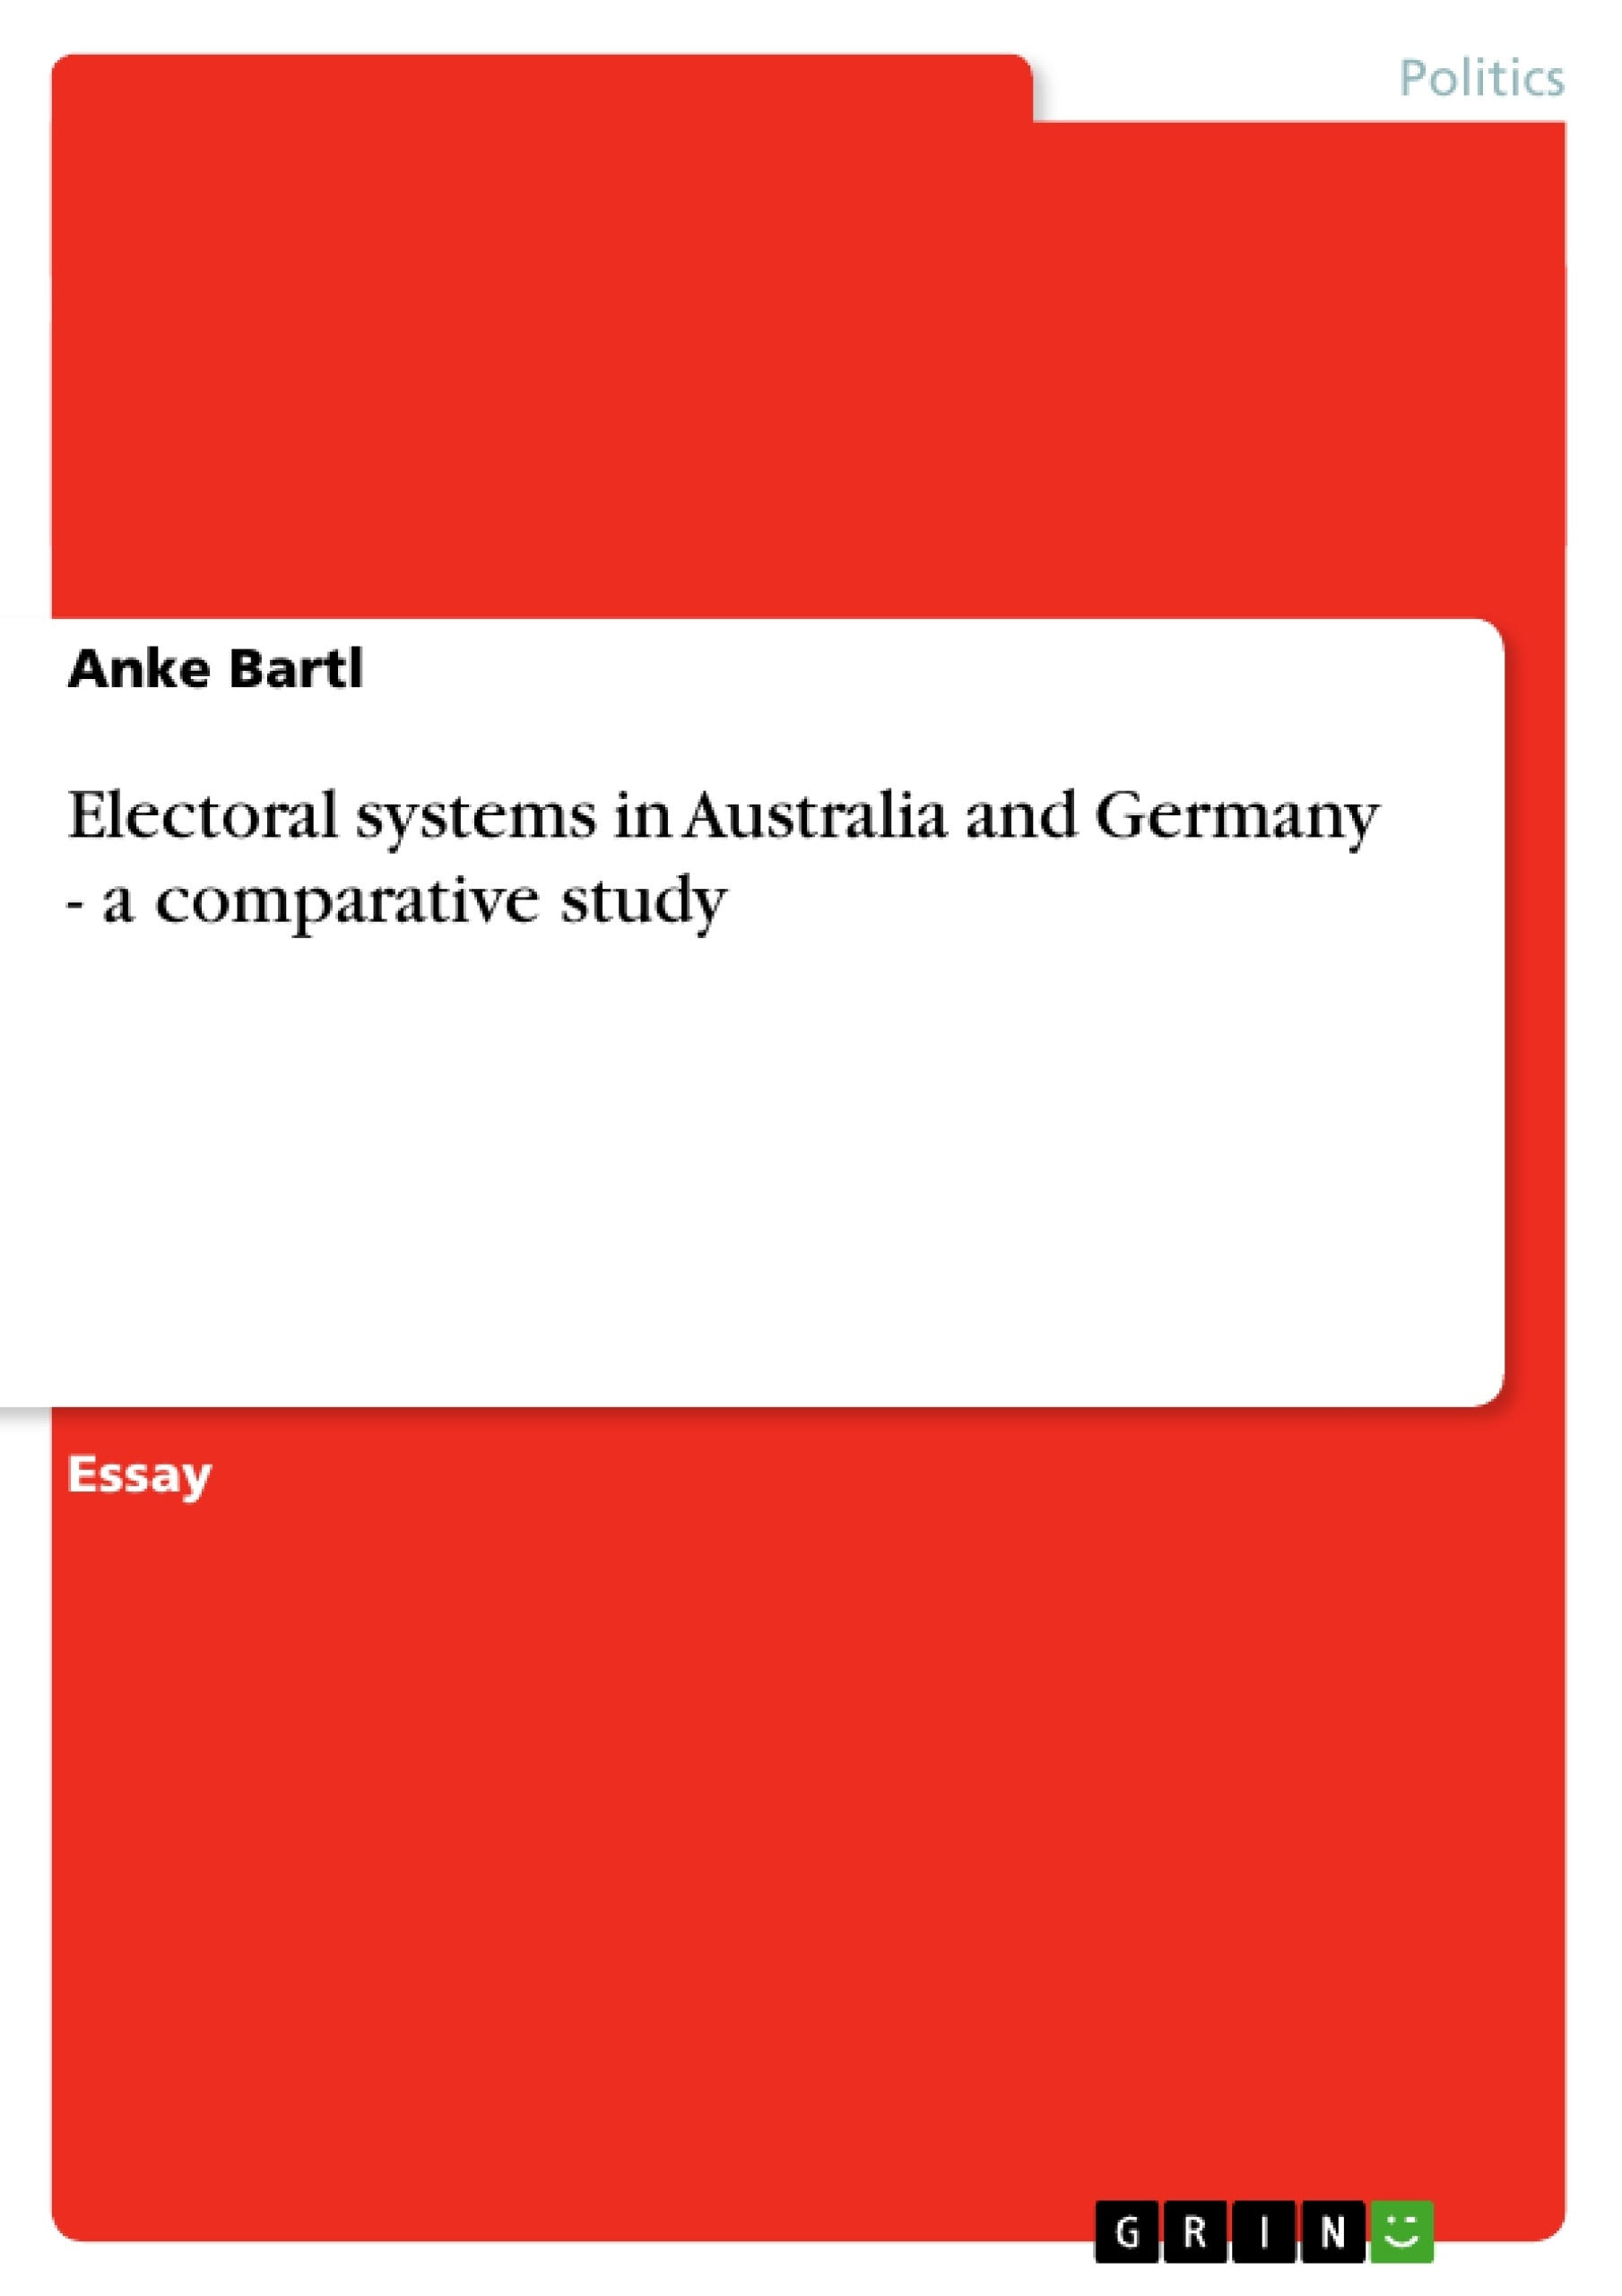 Title: Electoral systems in Australia and Germany - a comparative study